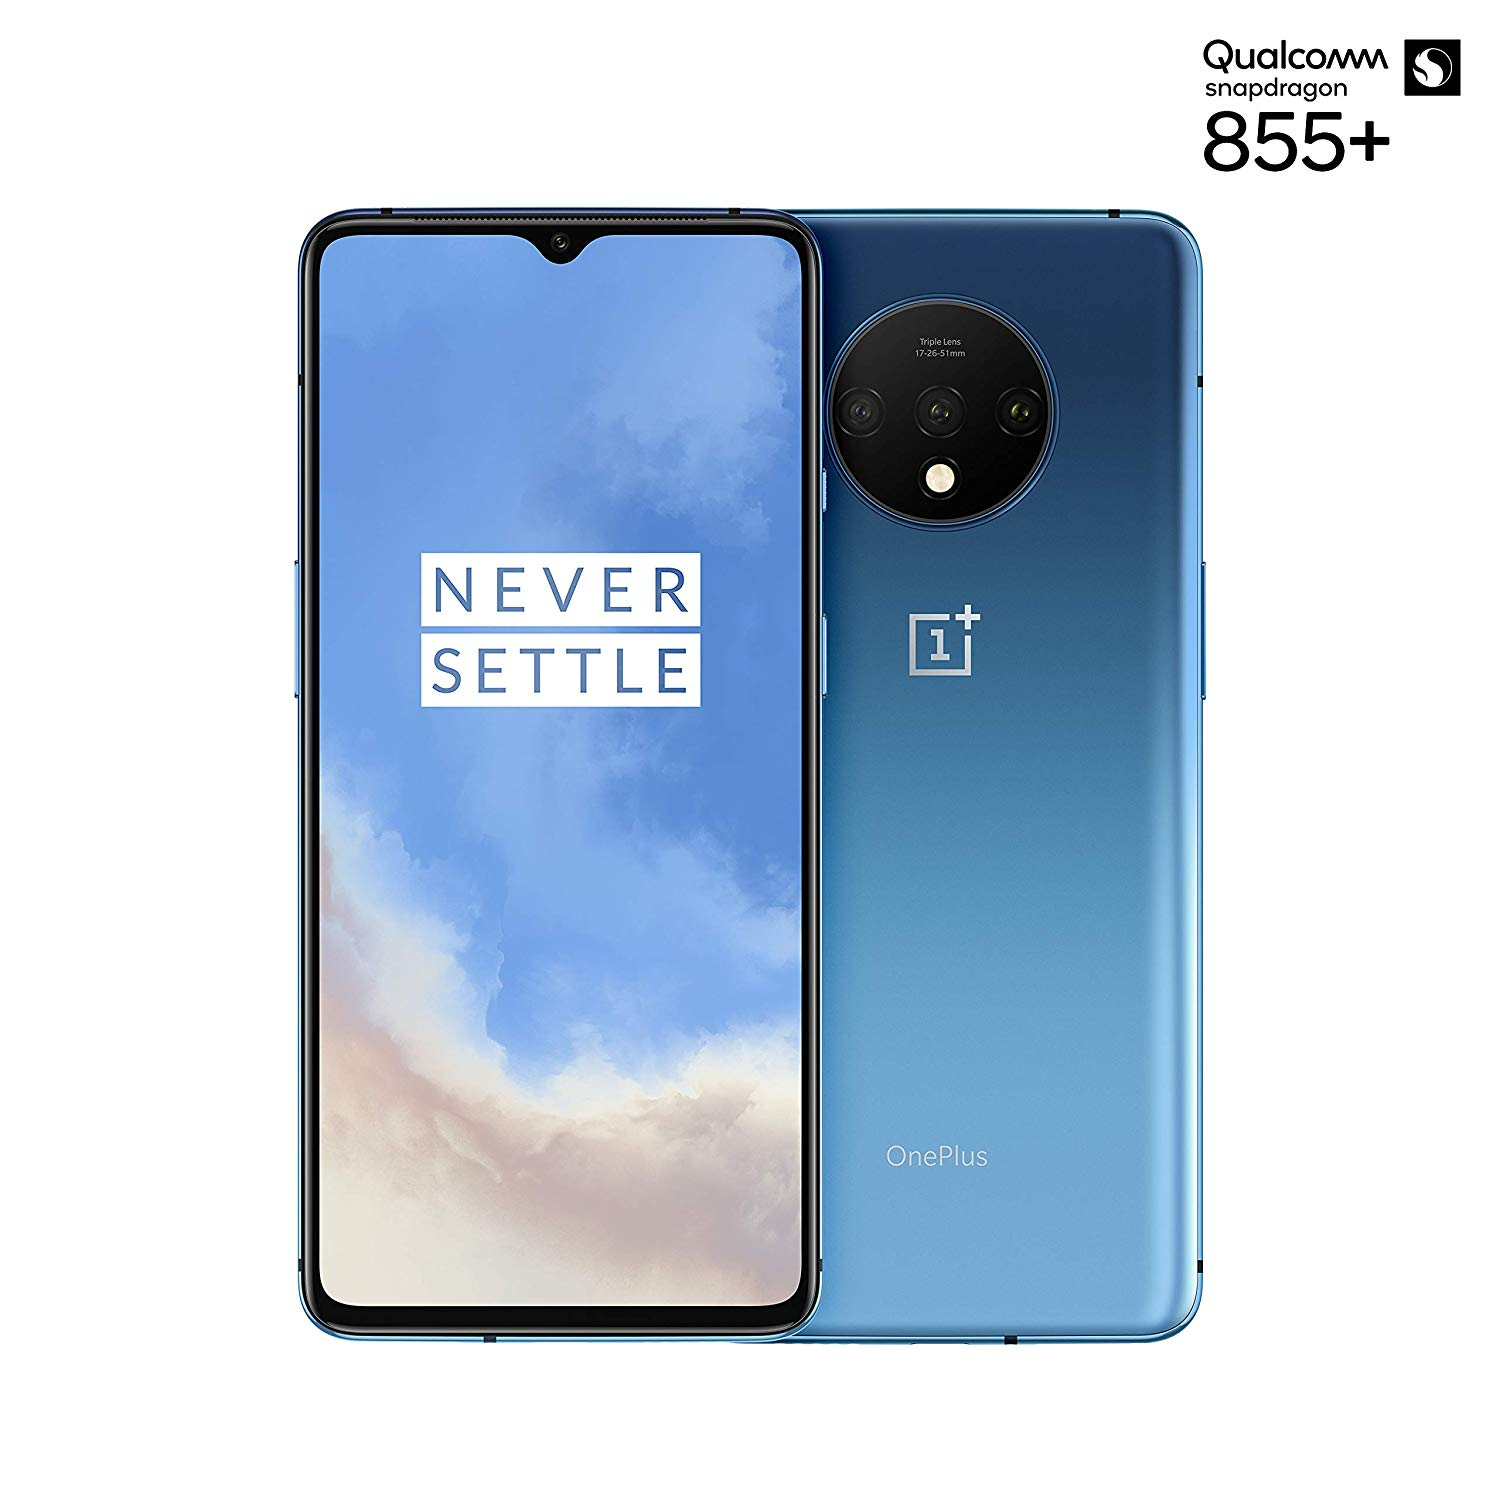 OnePlus 7T Smartphone Features Review